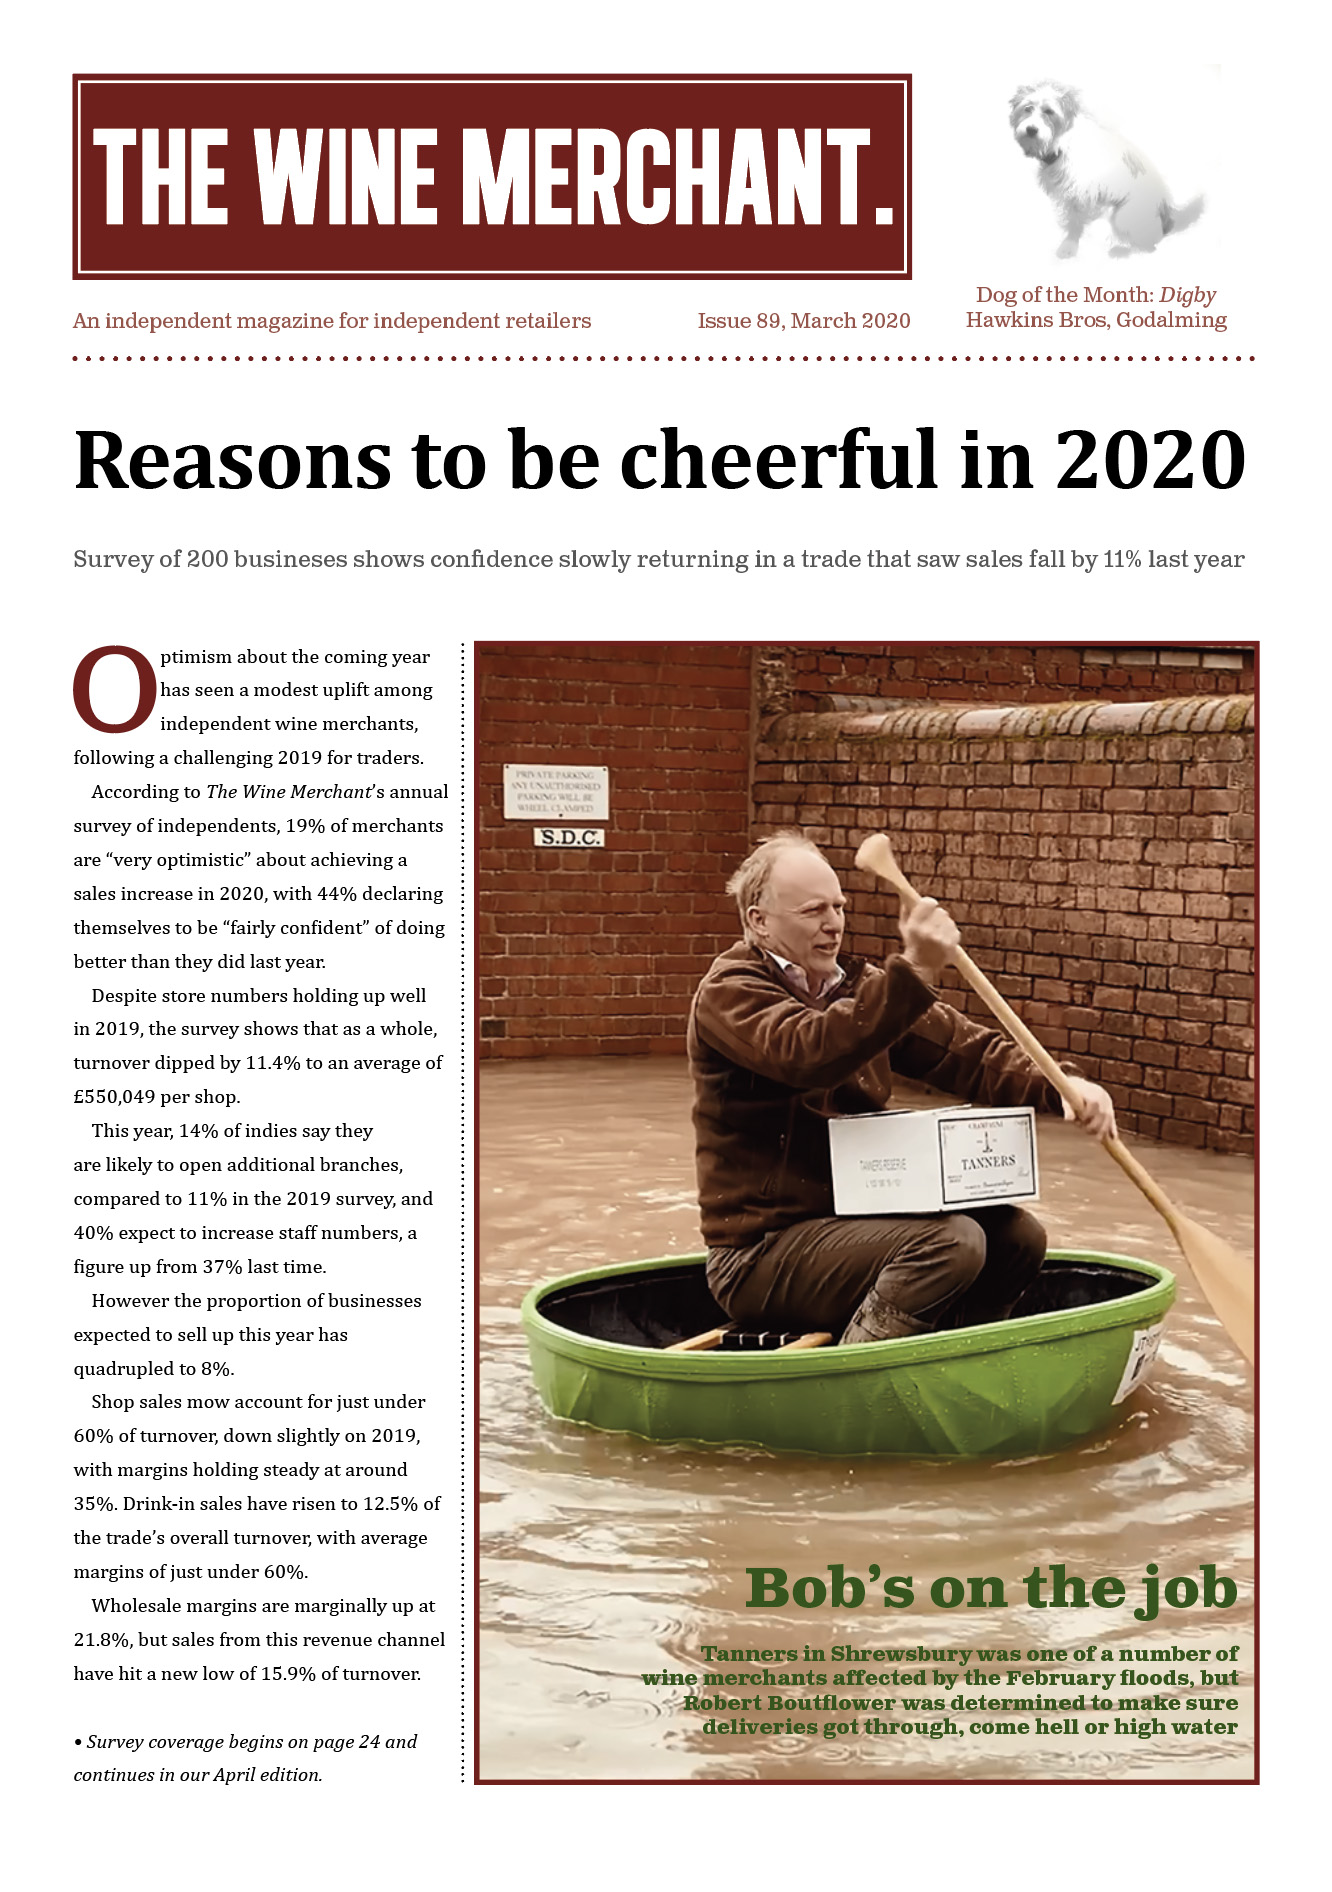 The Wine Merchant March 2020